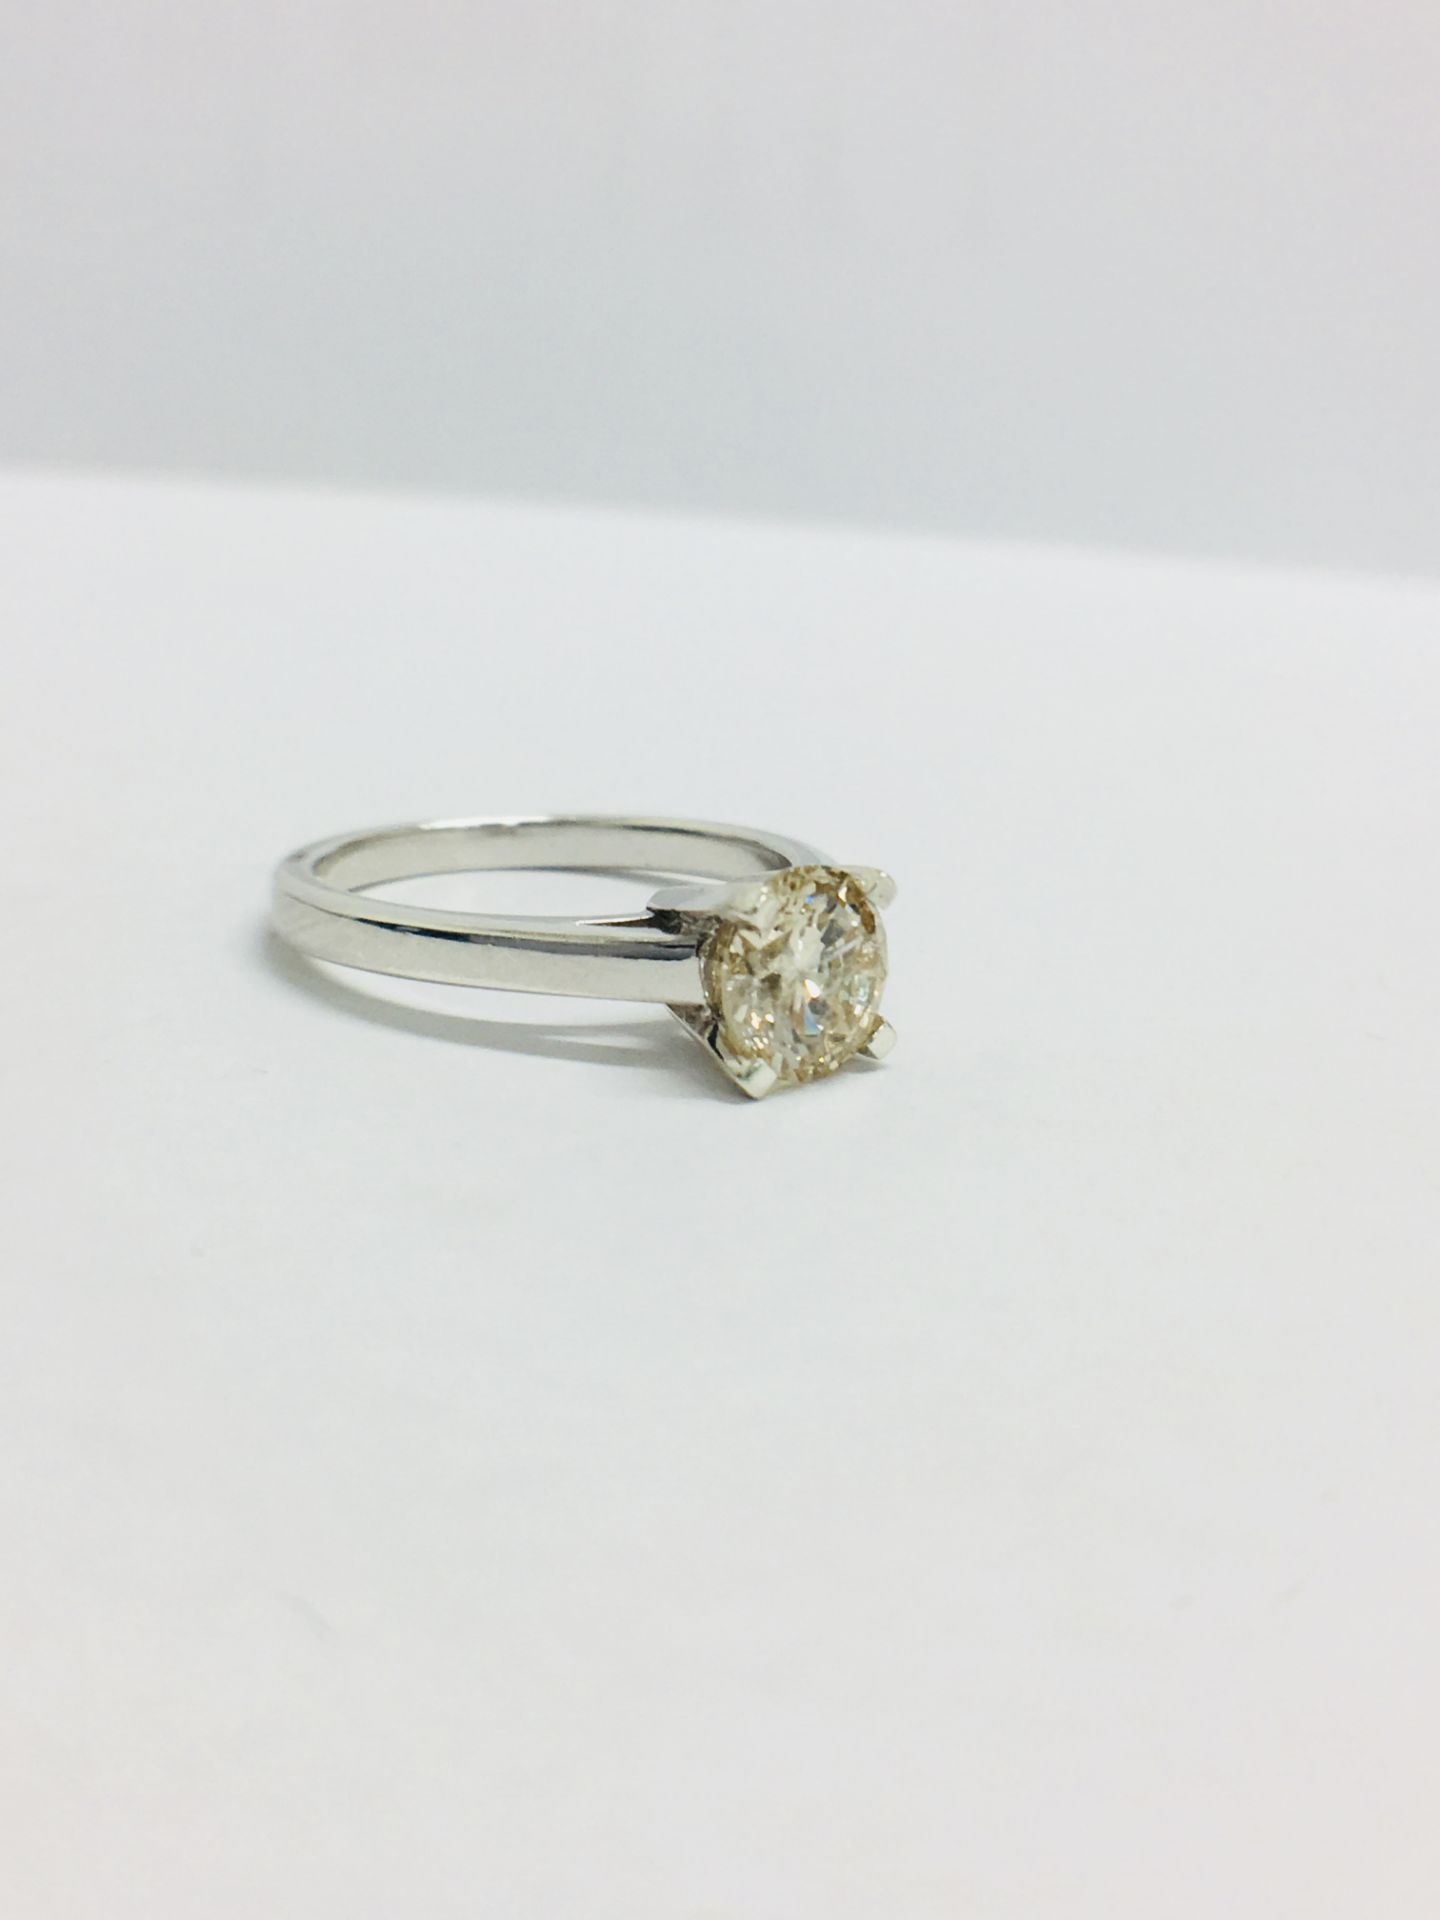 Lot 6 - 1.02Ct Diamond Solitaire Ring Set In 18Ct Gold.